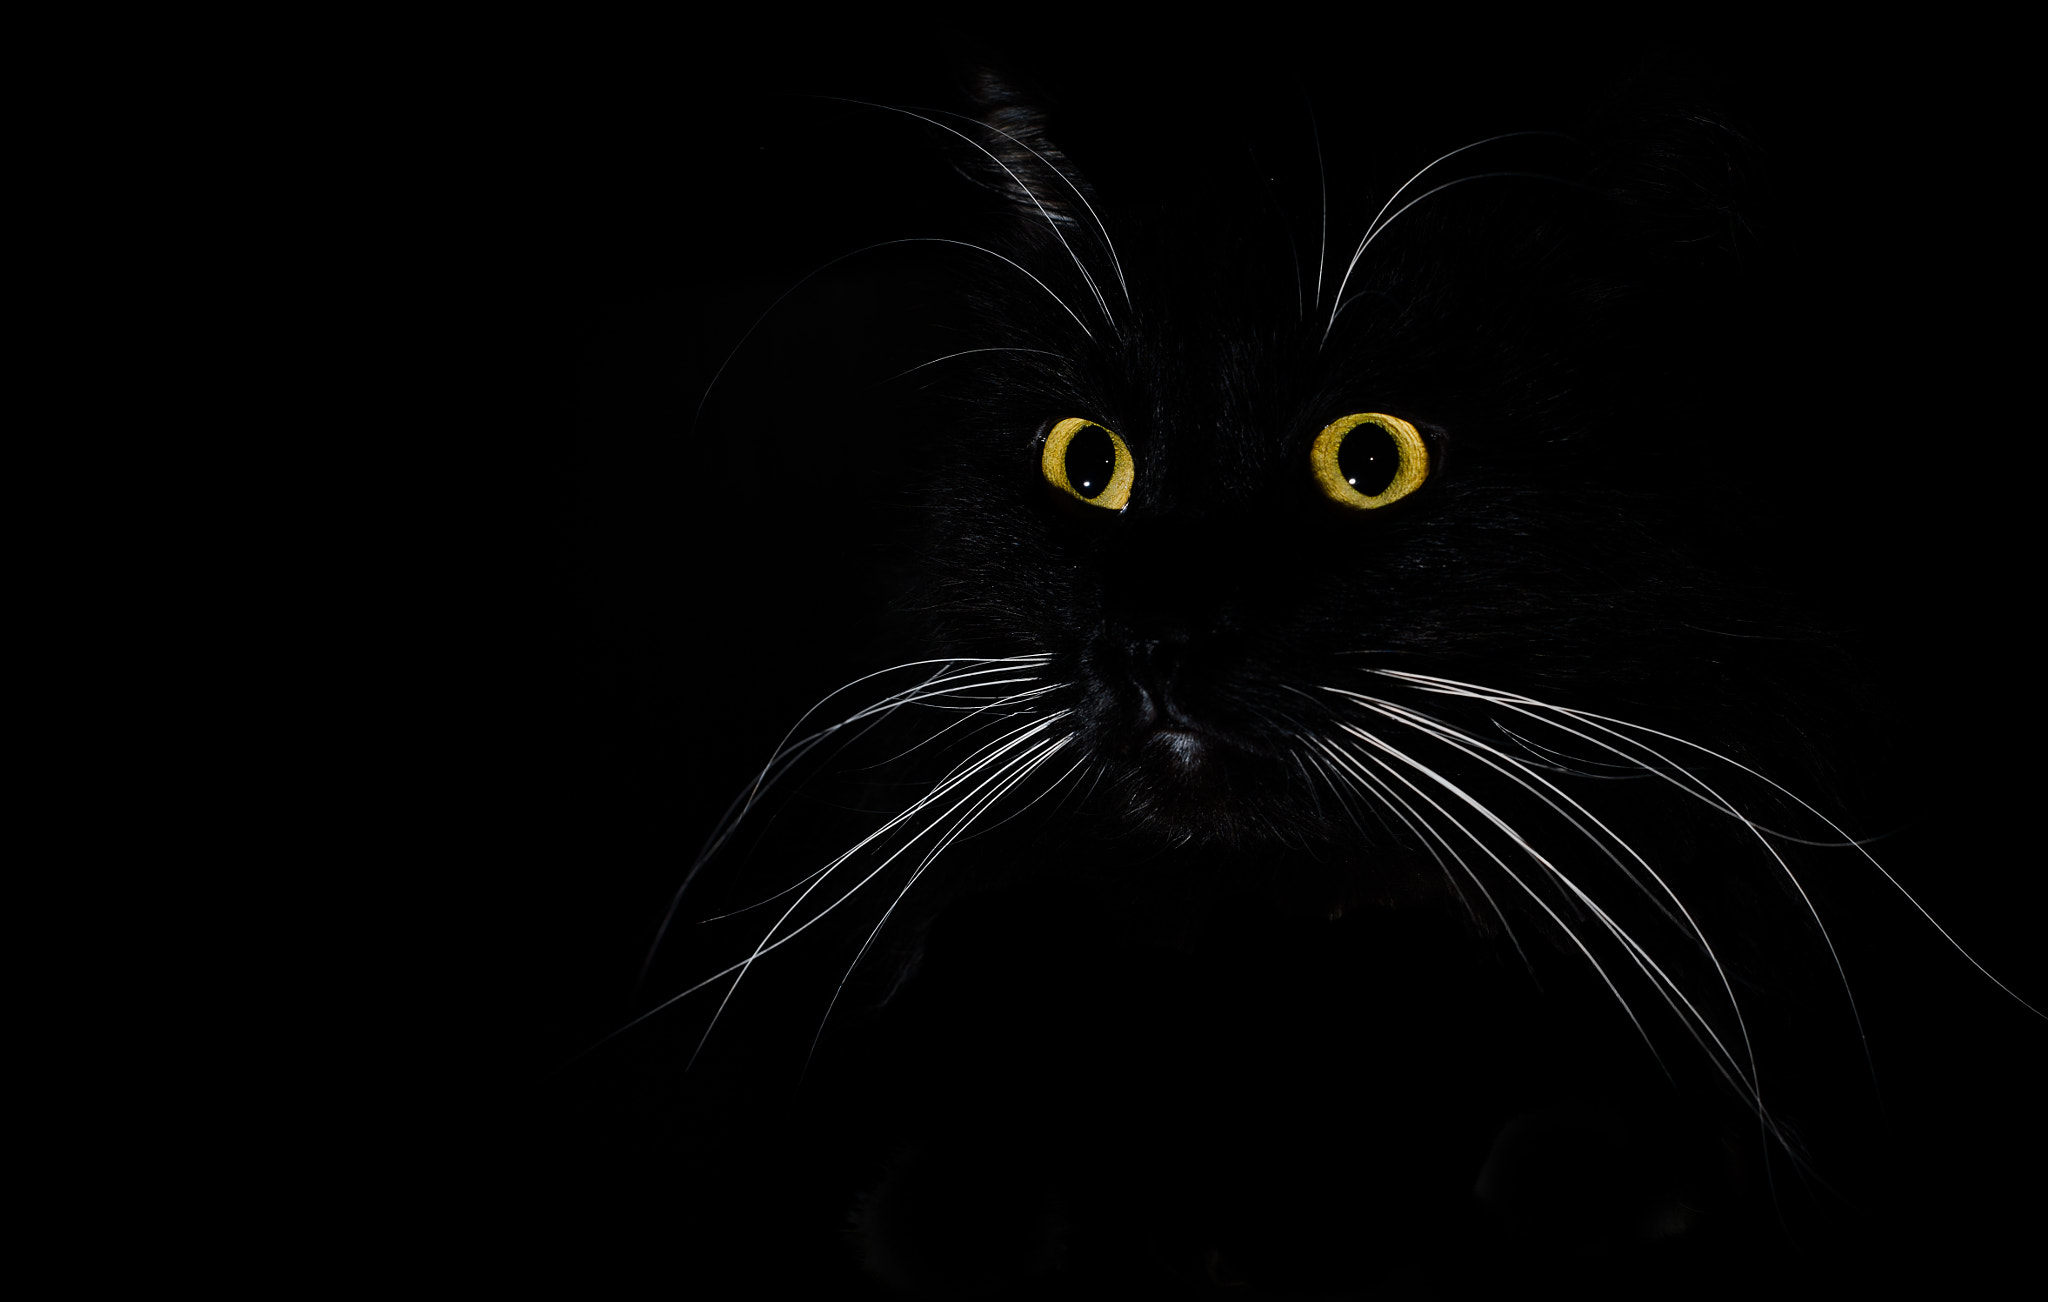 Photograph a portrait of a black cat in a dark room by Eugene Shmulev on 500px